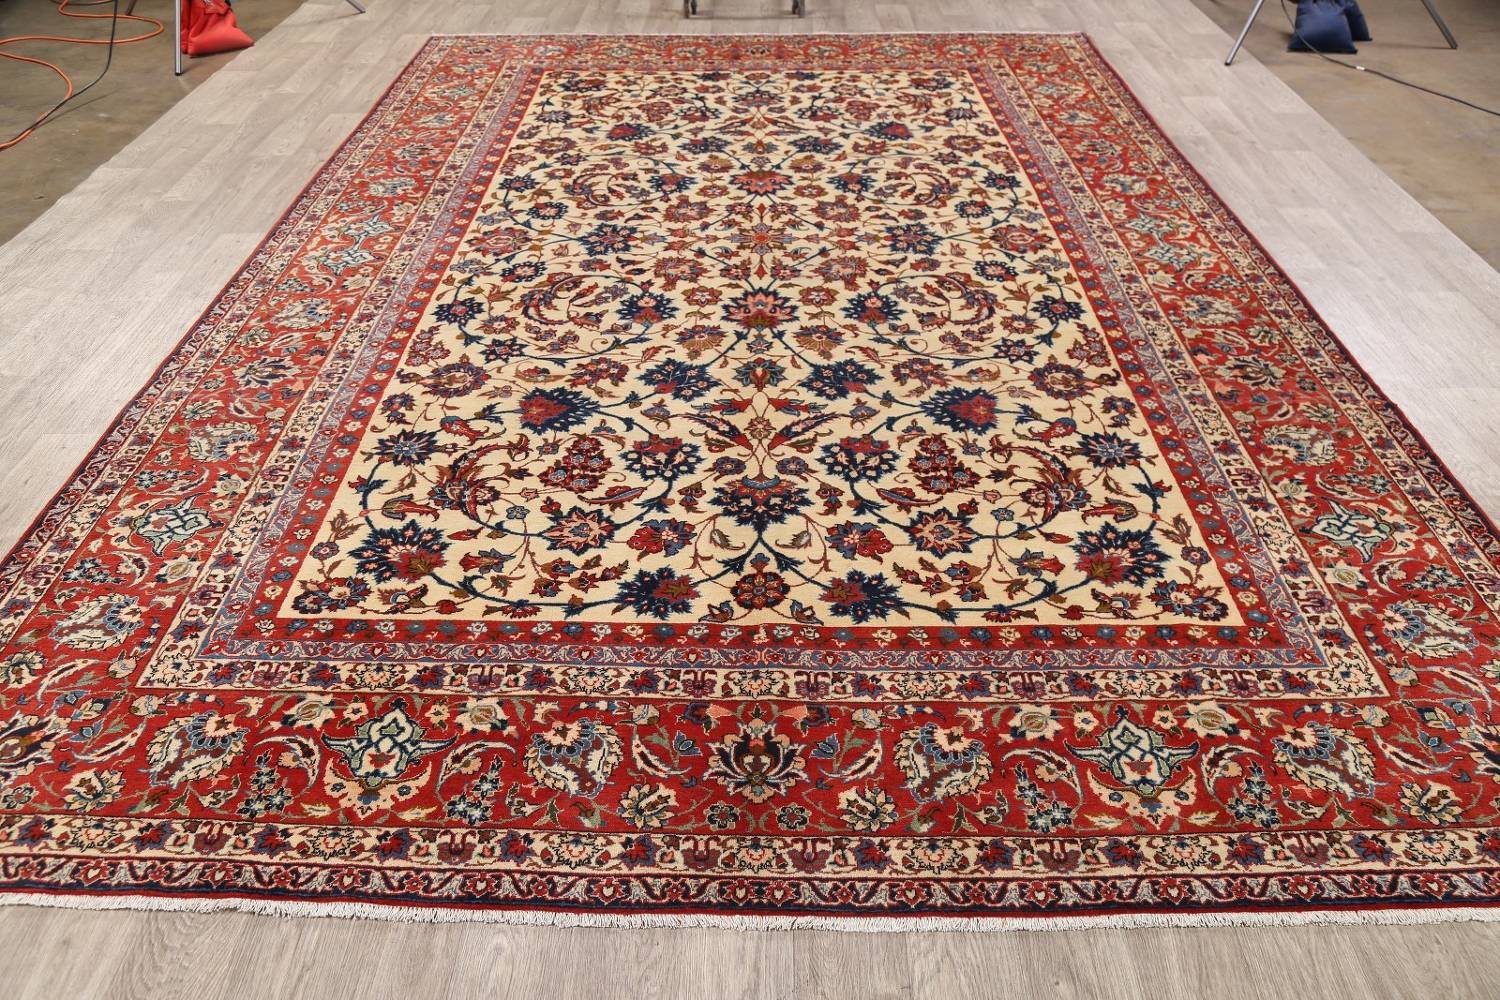 Floral 9x13 Isfahan Persian Area Rug image 15